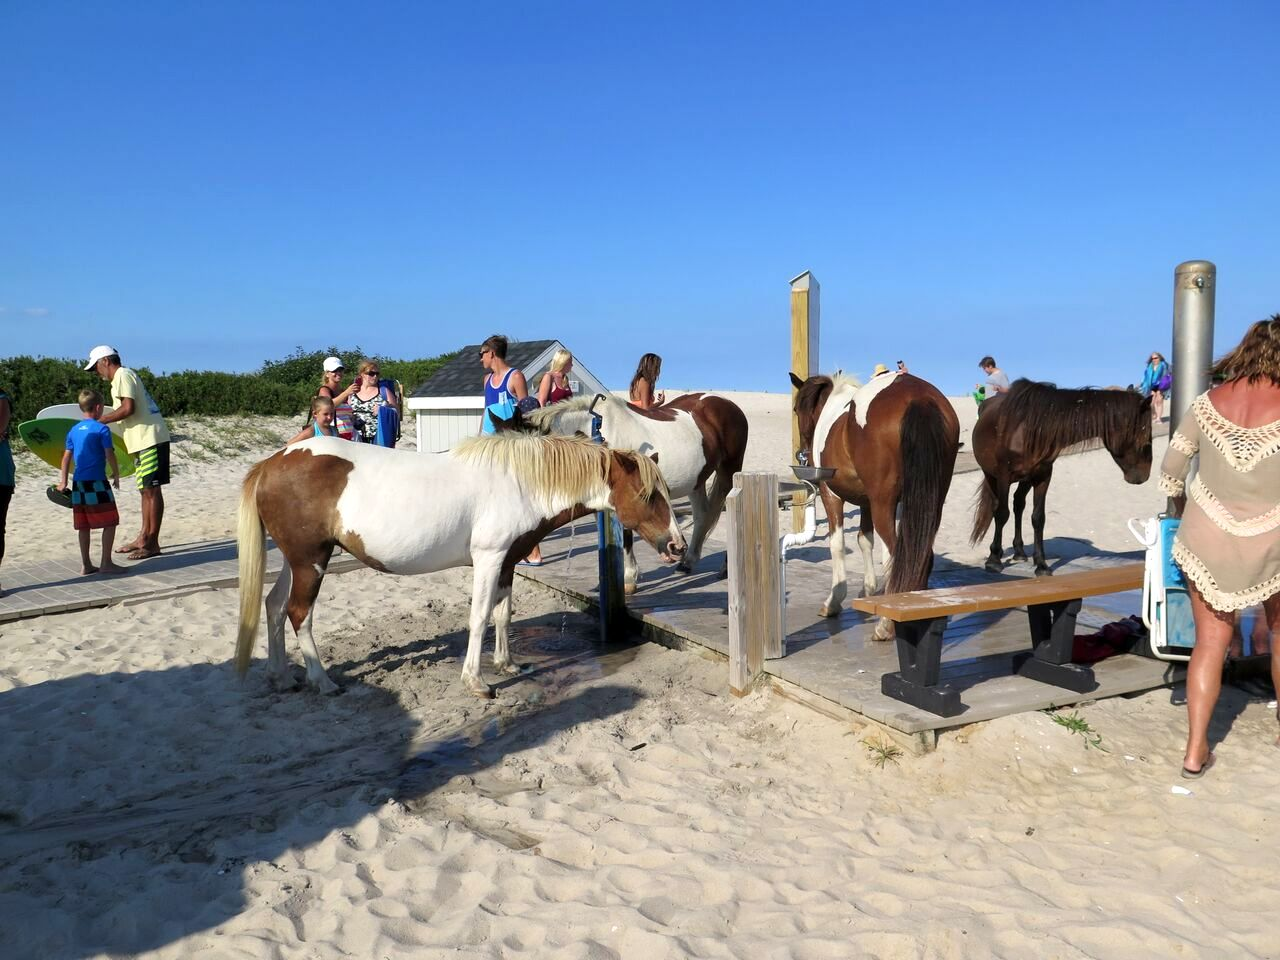 Assateague Lifeguard Gets Kicked in Head by Wild Horse